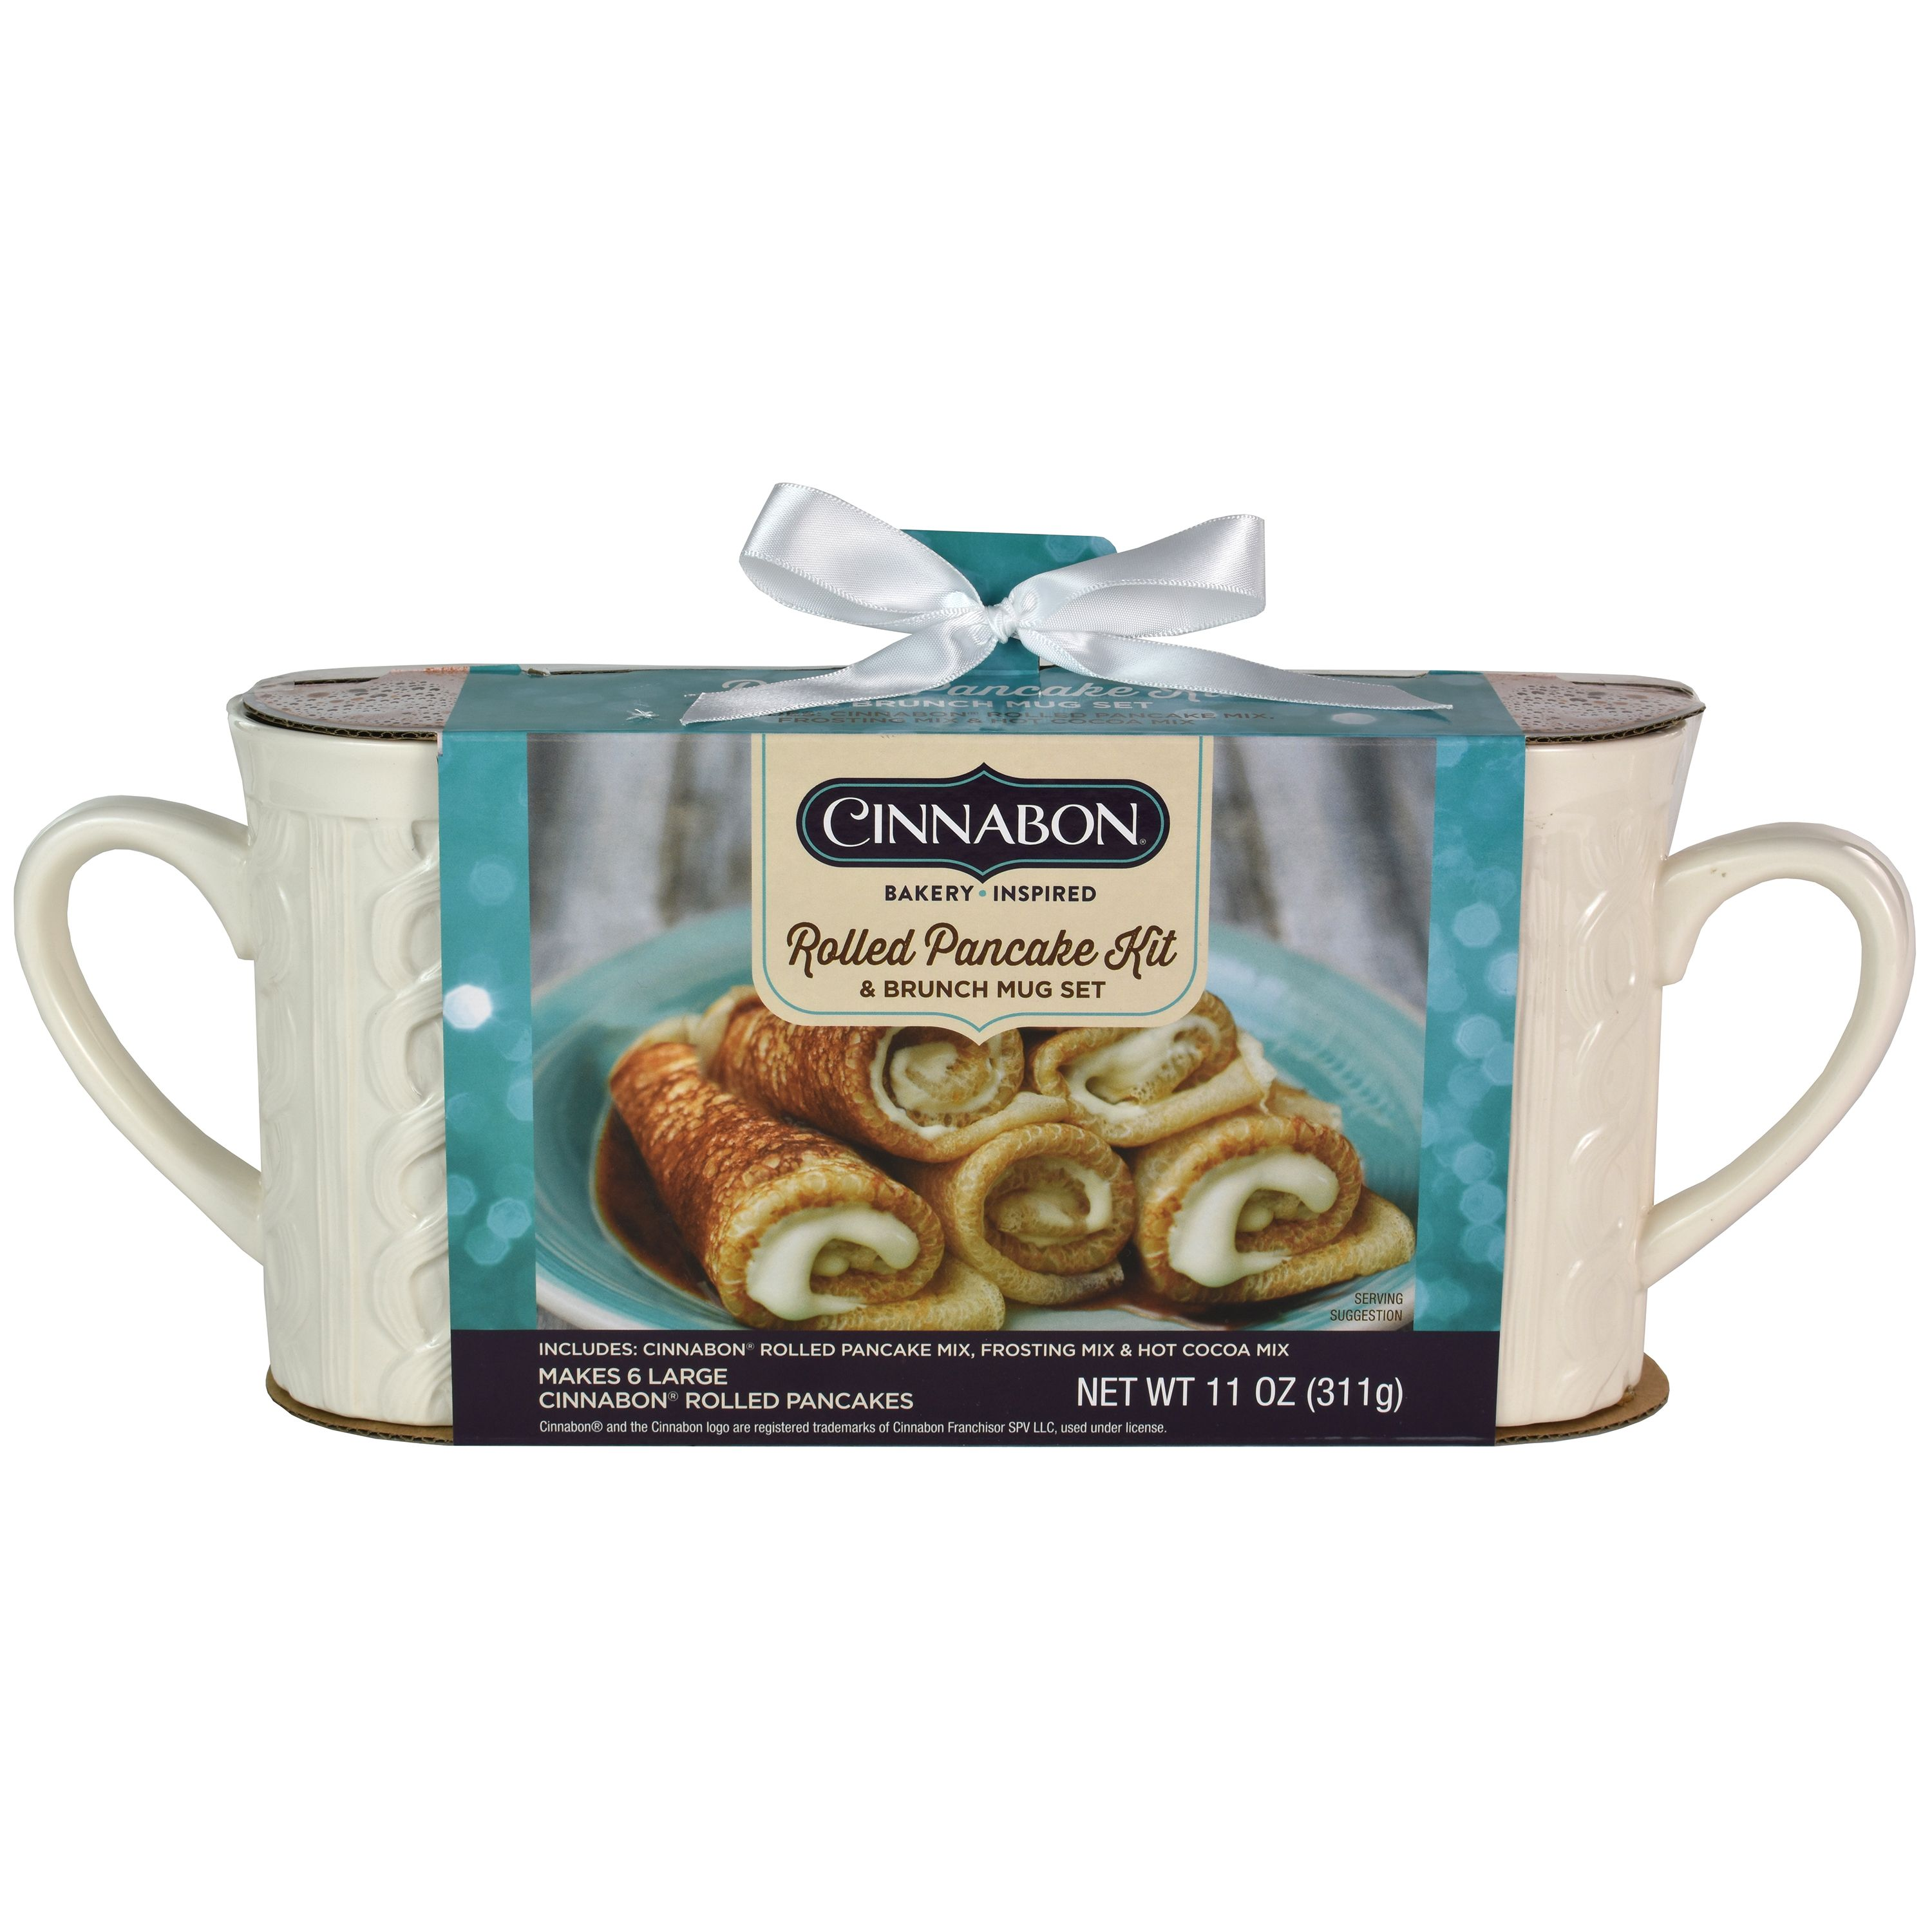 Walmart Is Selling A Cinnabon Rolled Pancake Kit To Help Make The Ultimate Winter Breakfast